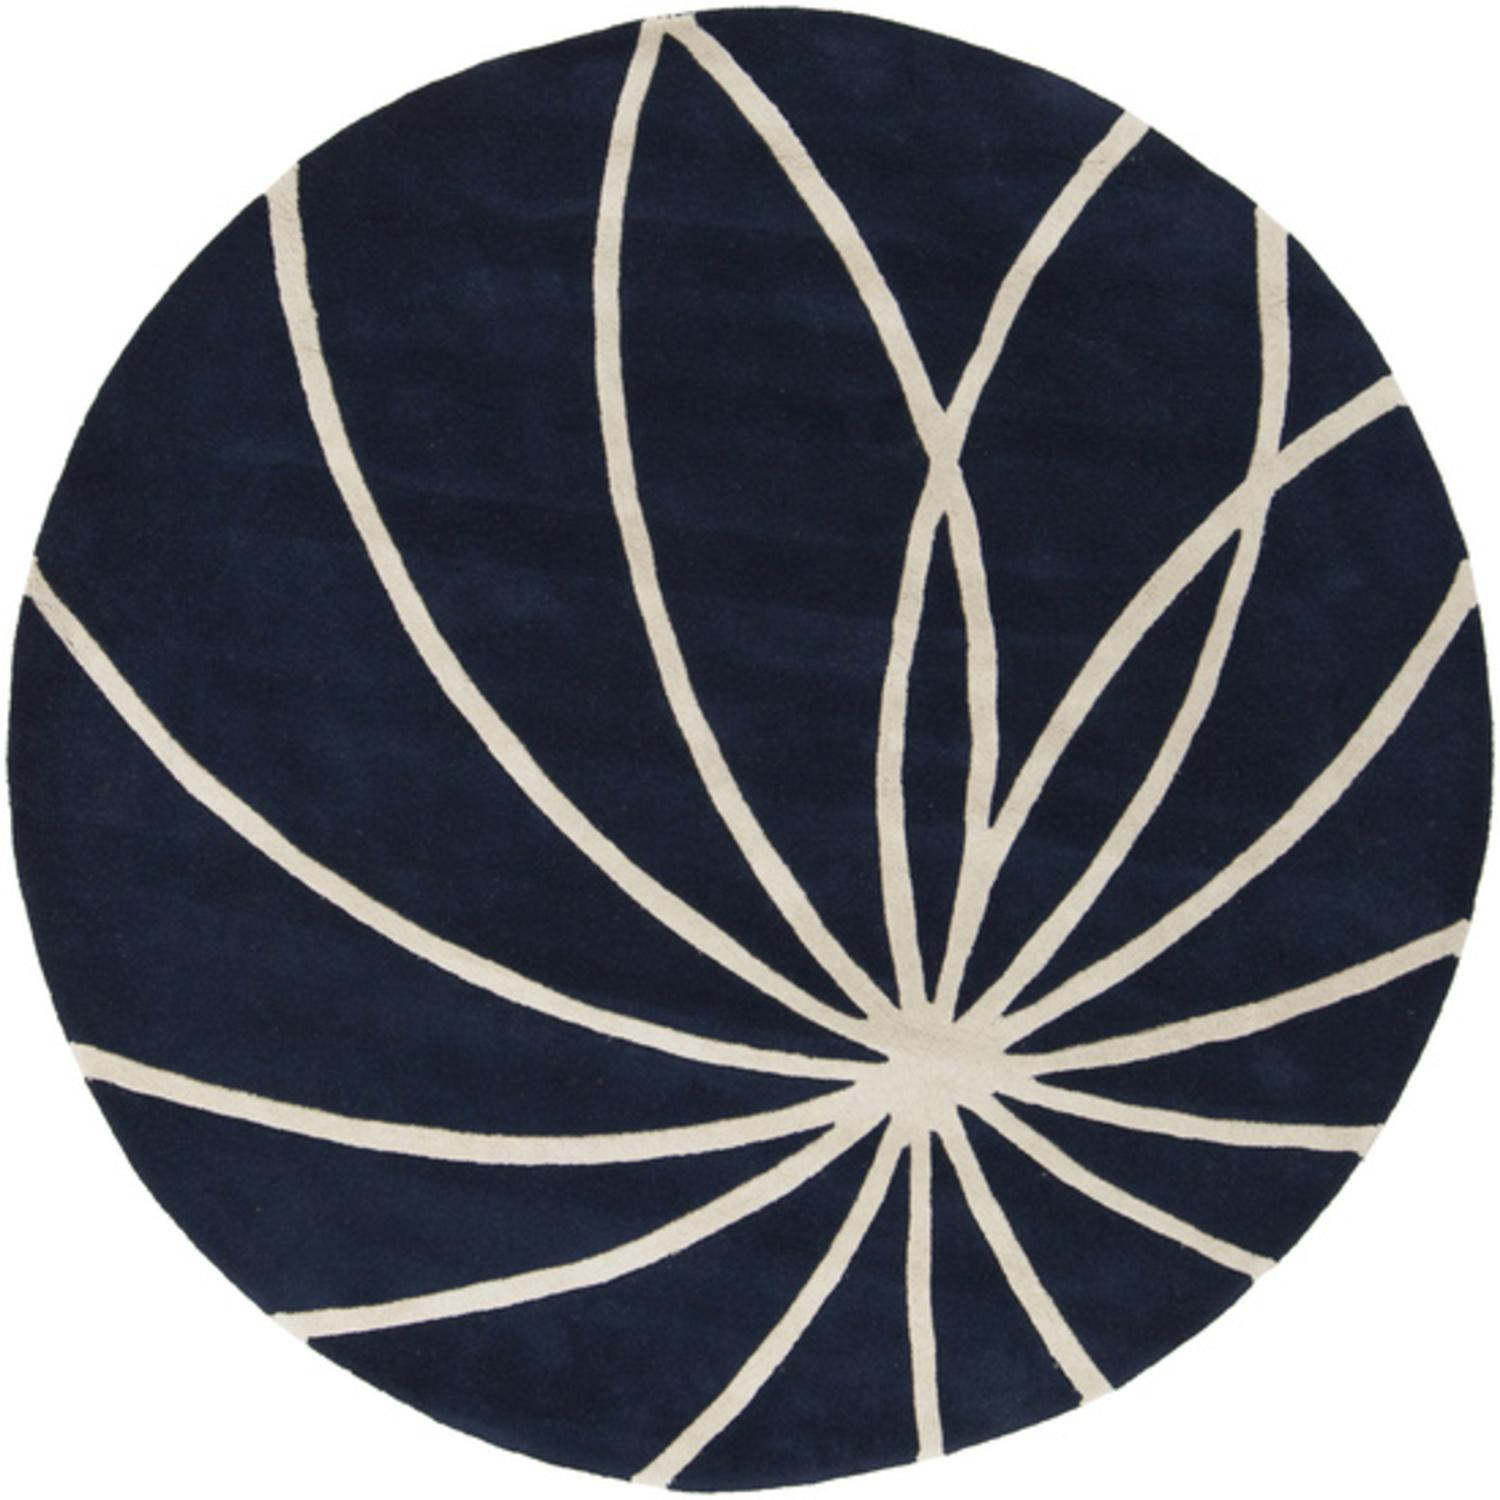 6' Plasma Elektra Antique White and Dark Blue Hand Woven Round Wool Area Rug